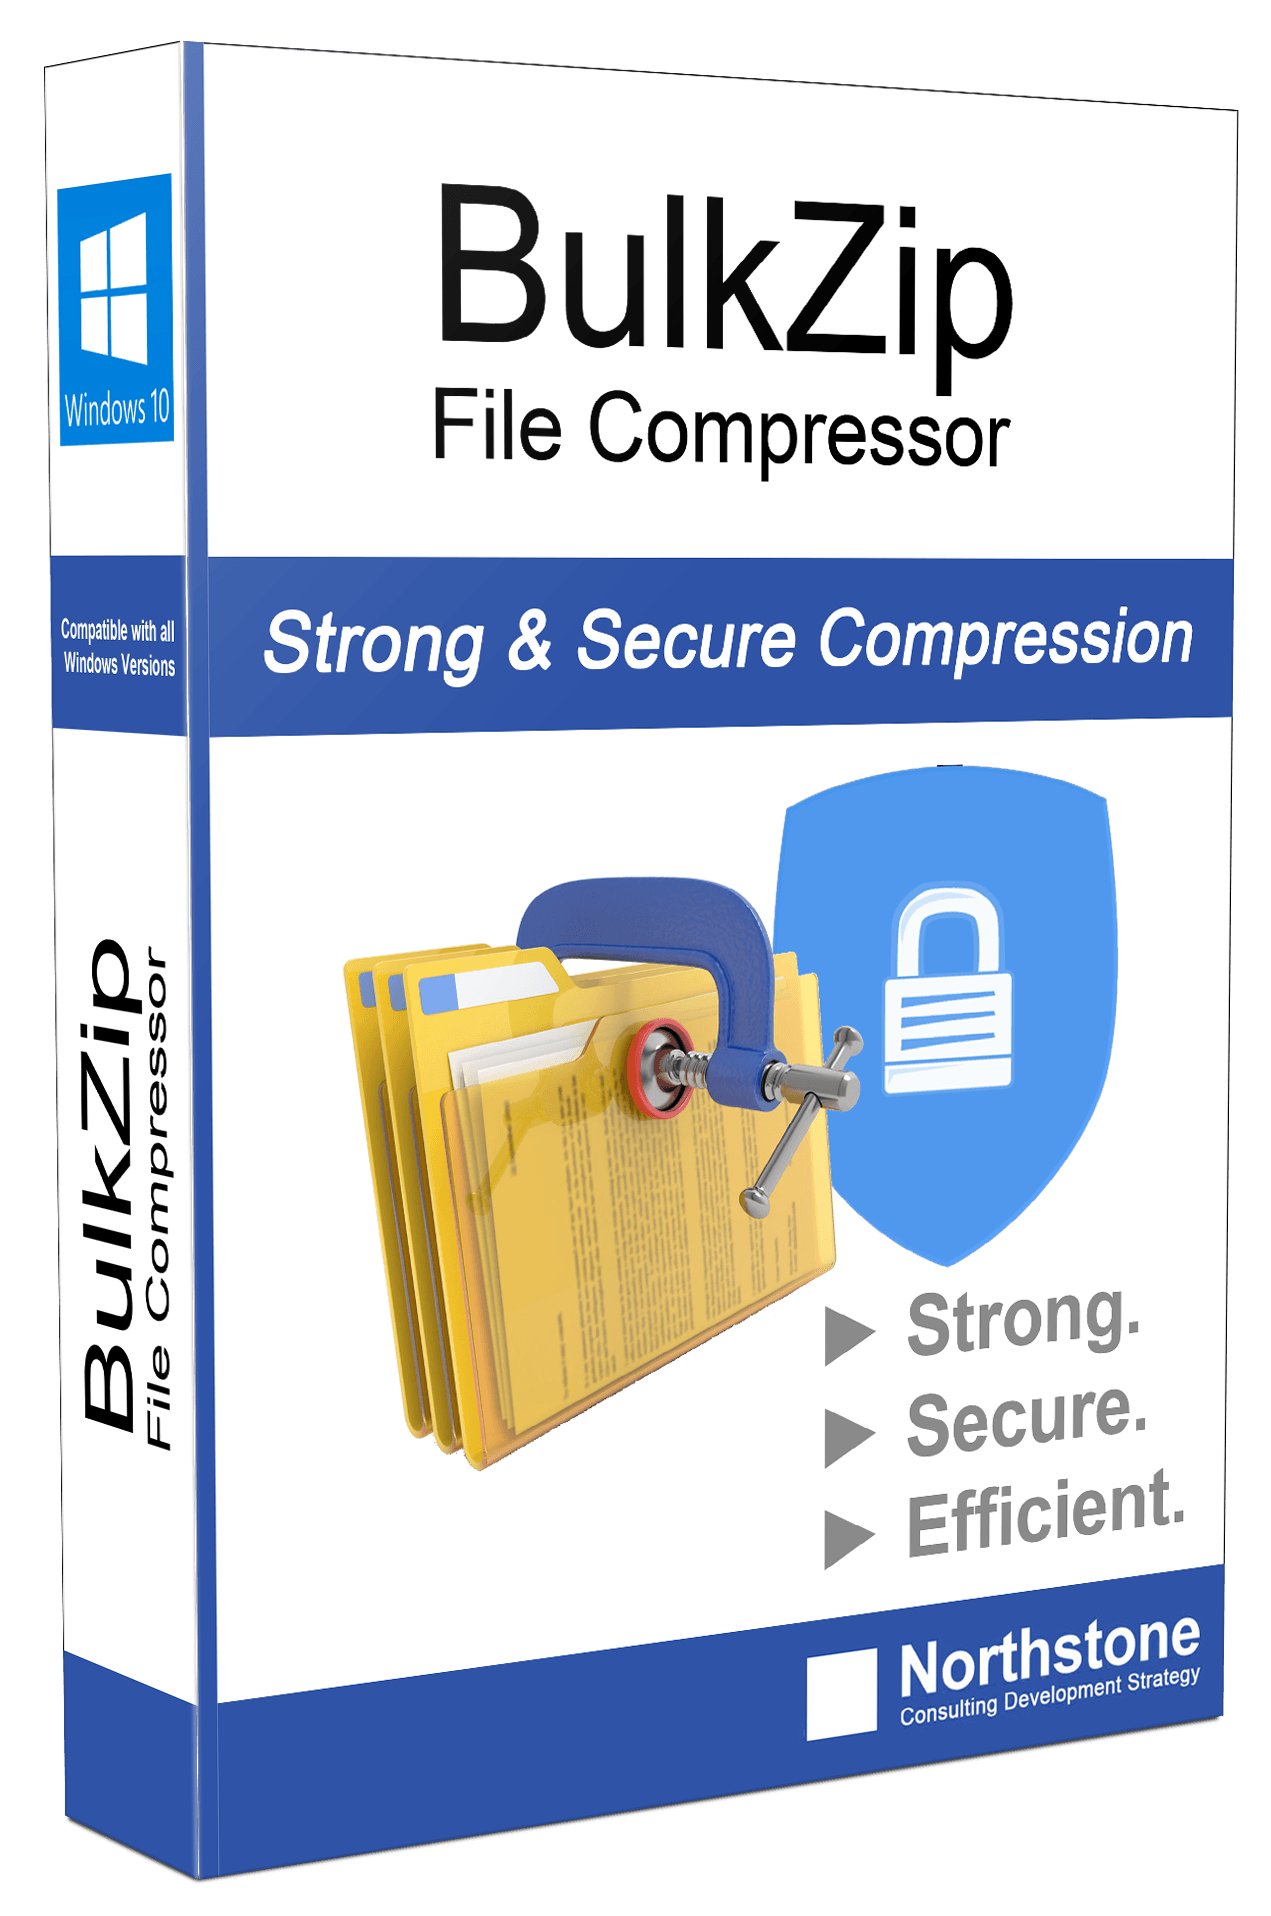 Selecting file compression software program application